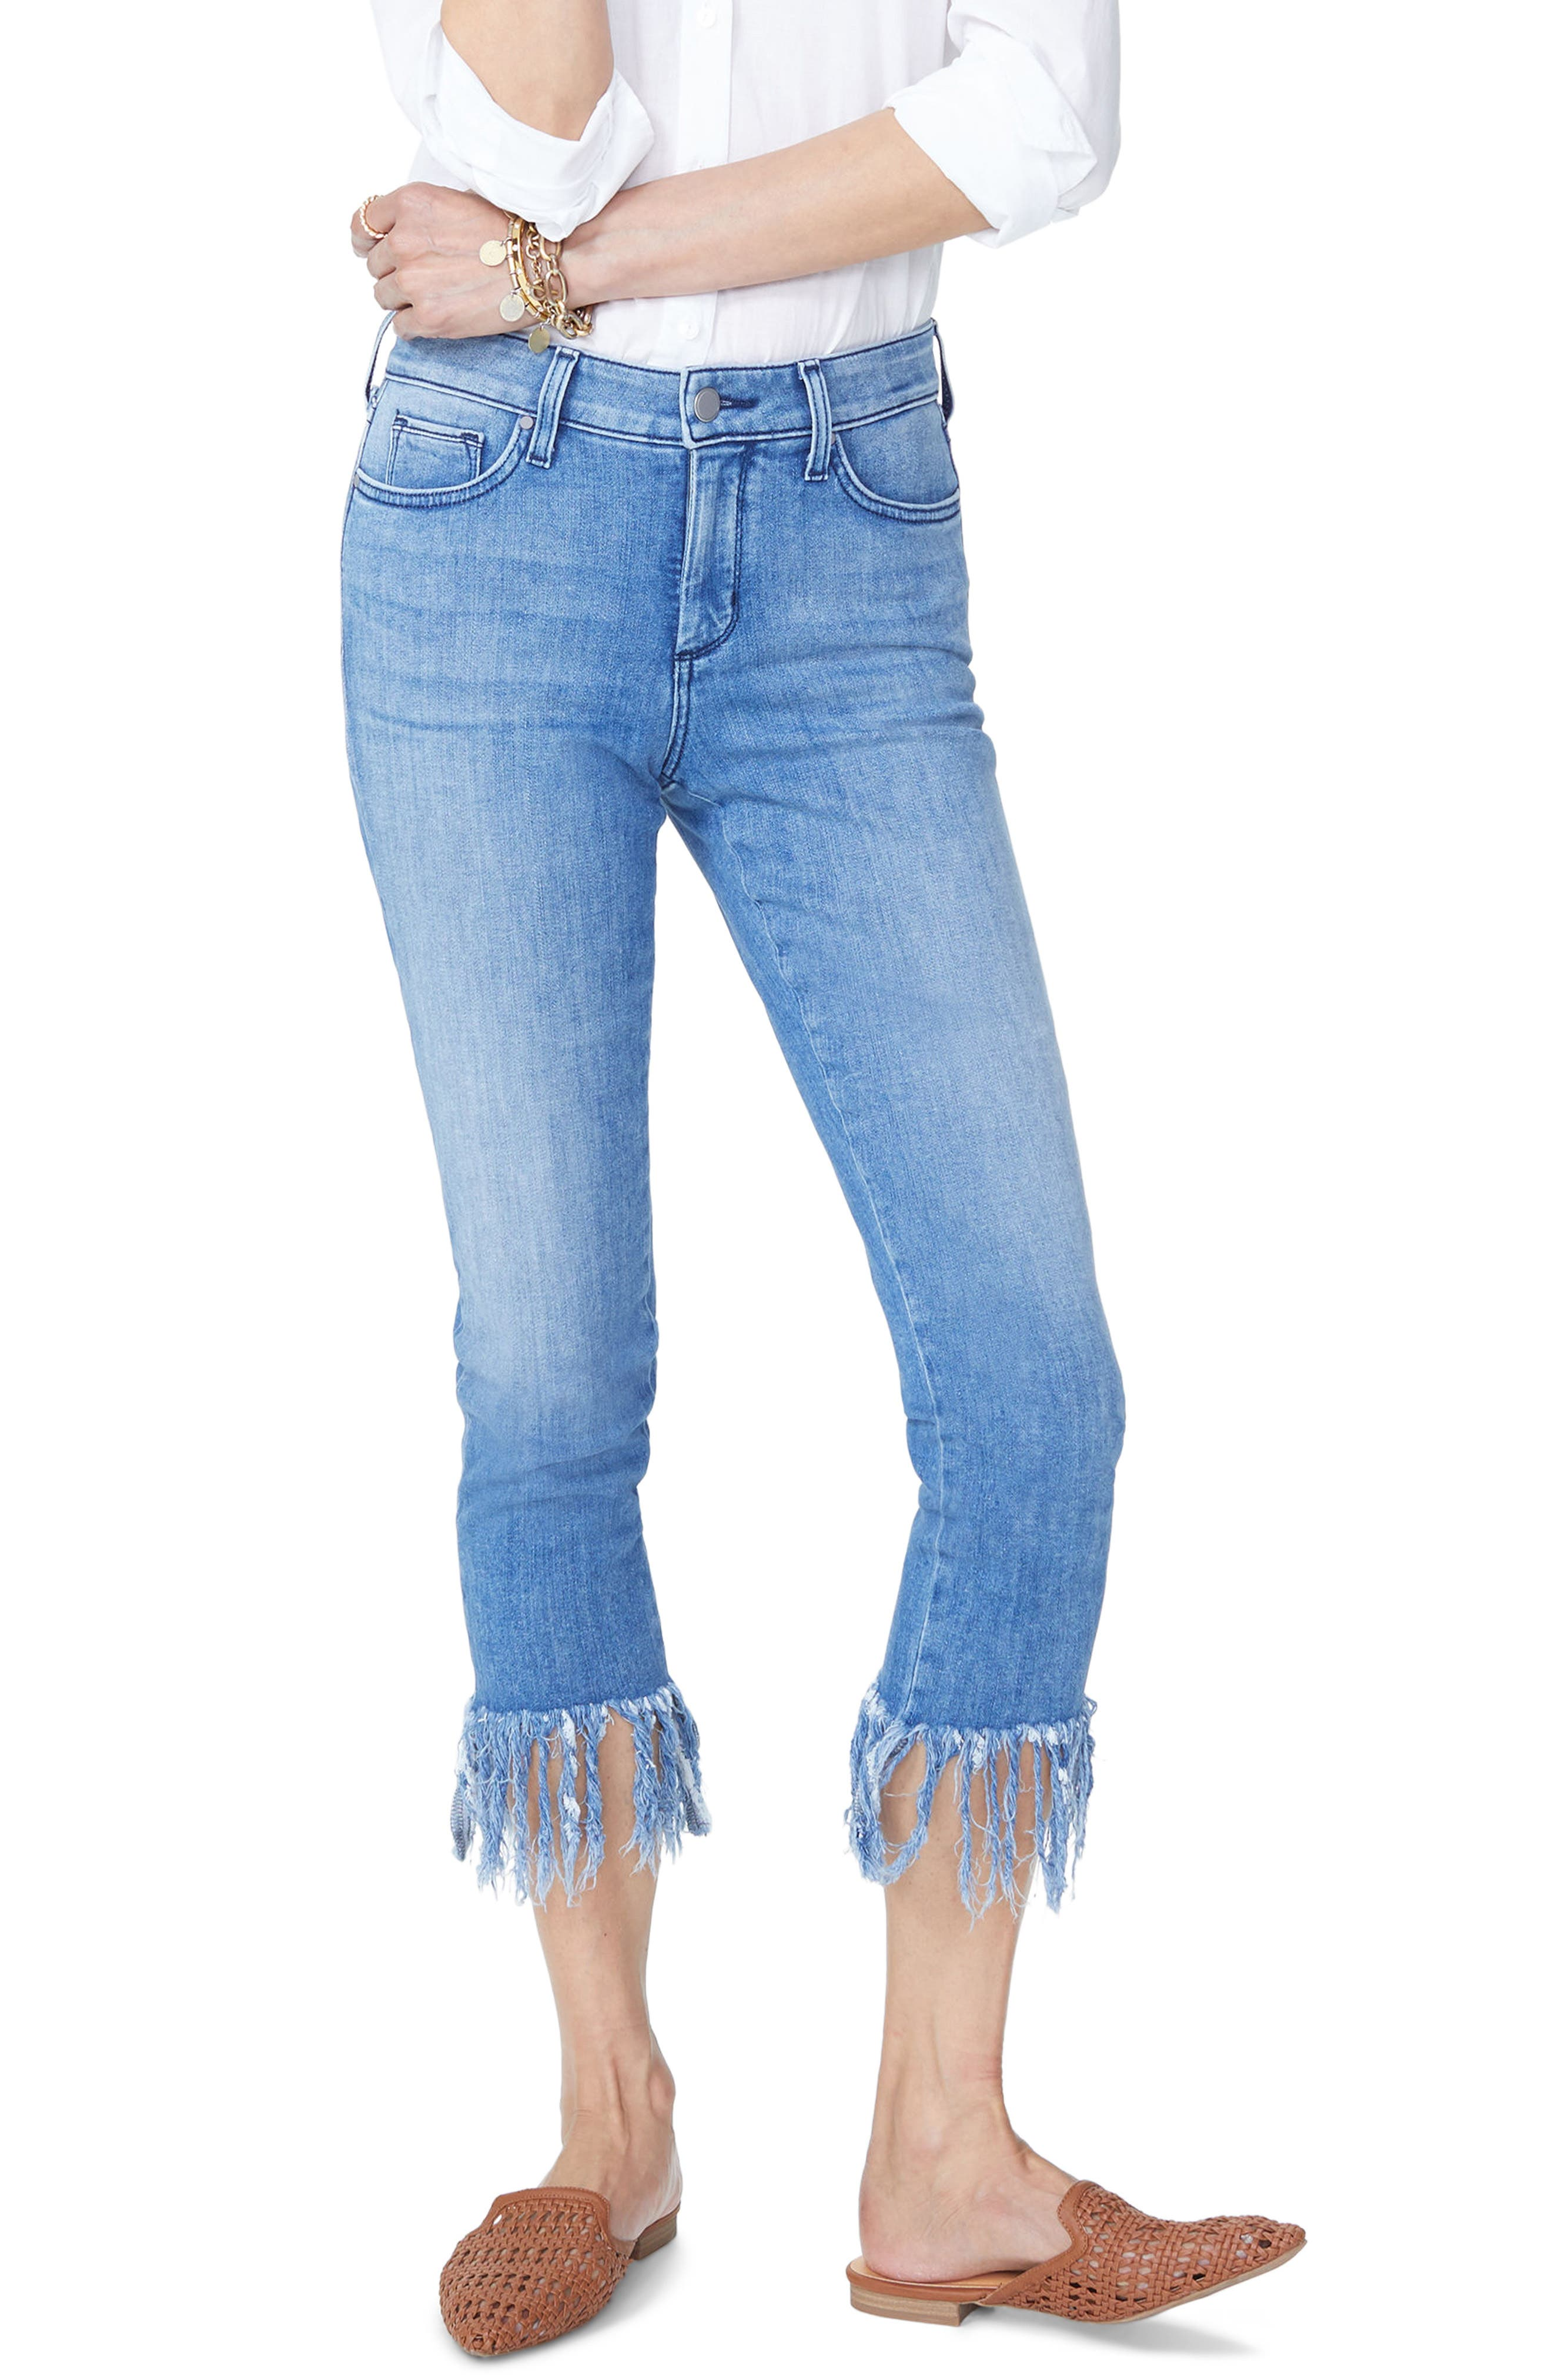 Ami High Waist Long Fray Skinny Stretch Ankle Jeans,                         Main,                         color, 425